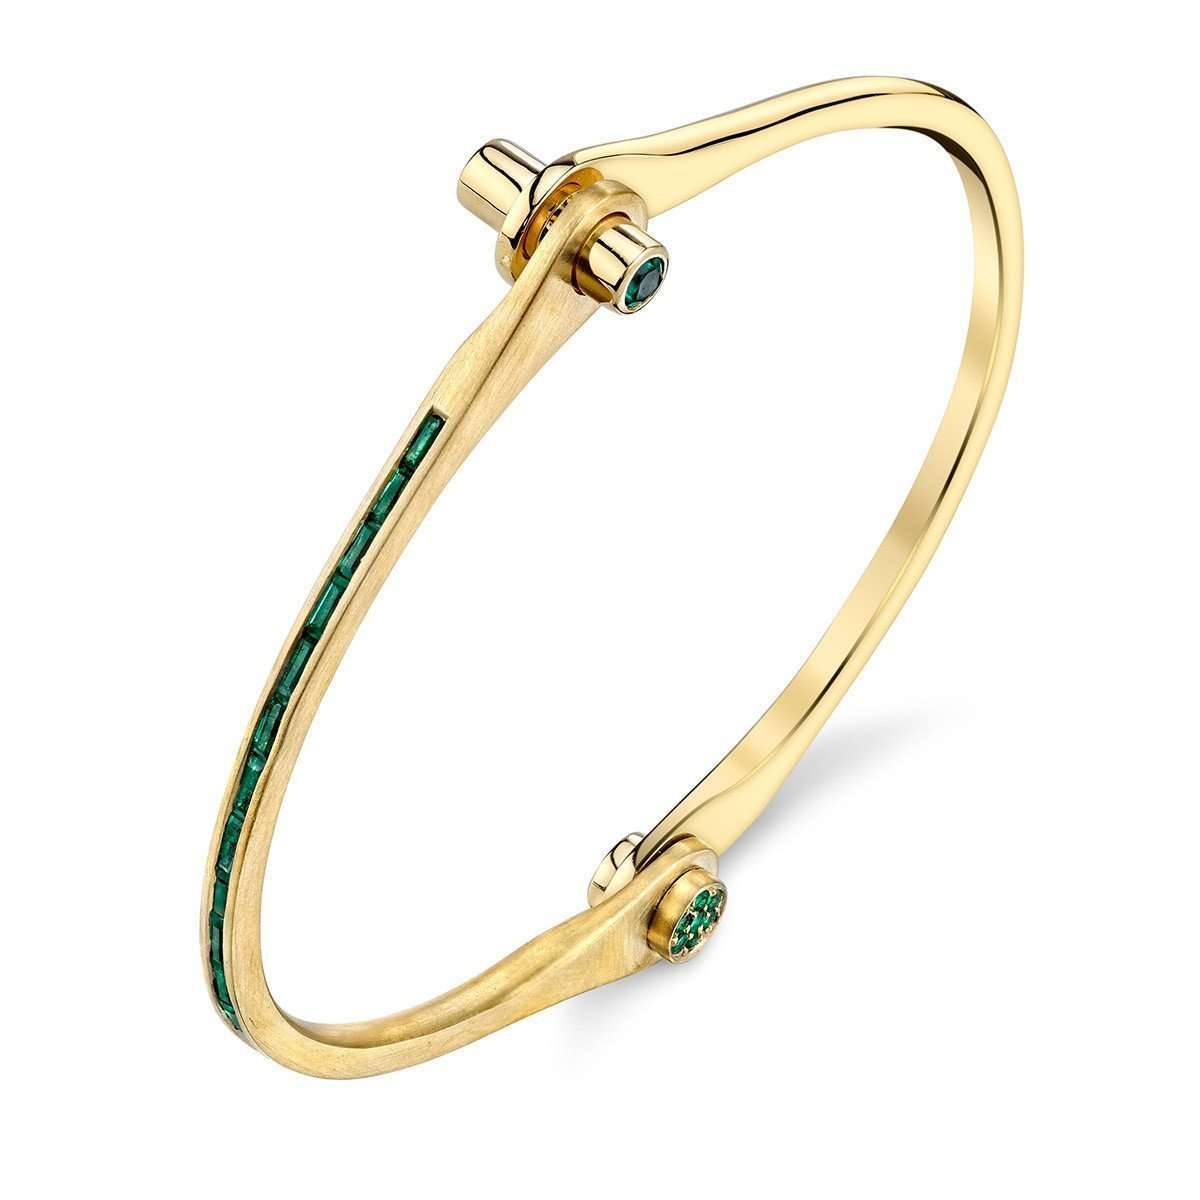 Borgioni Baguette Triple Ear Cuff with Emeralds jVBDH8